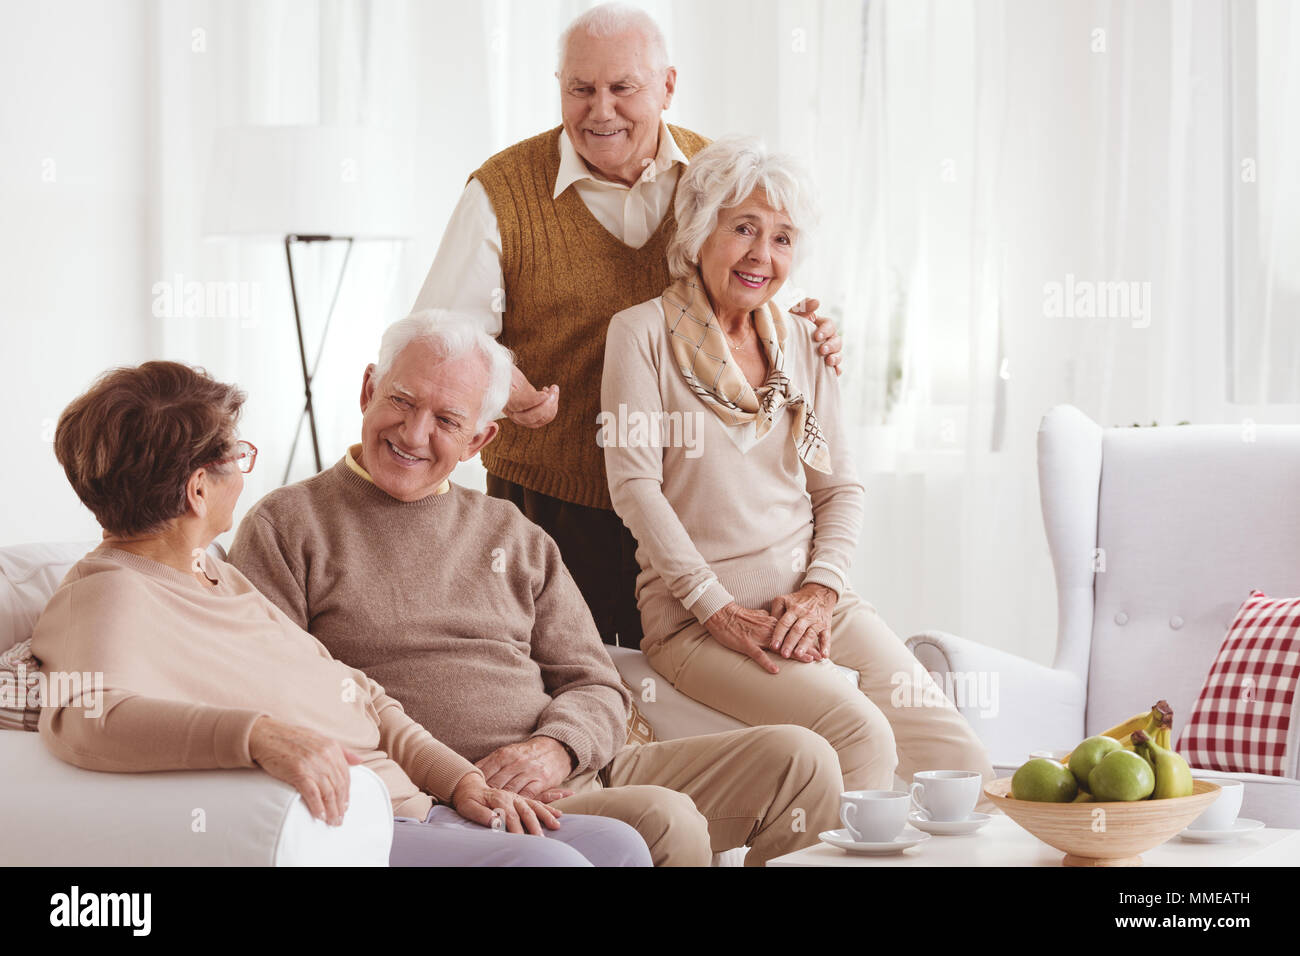 Deux couples relaxing together at home, talking and smiling Banque D'Images